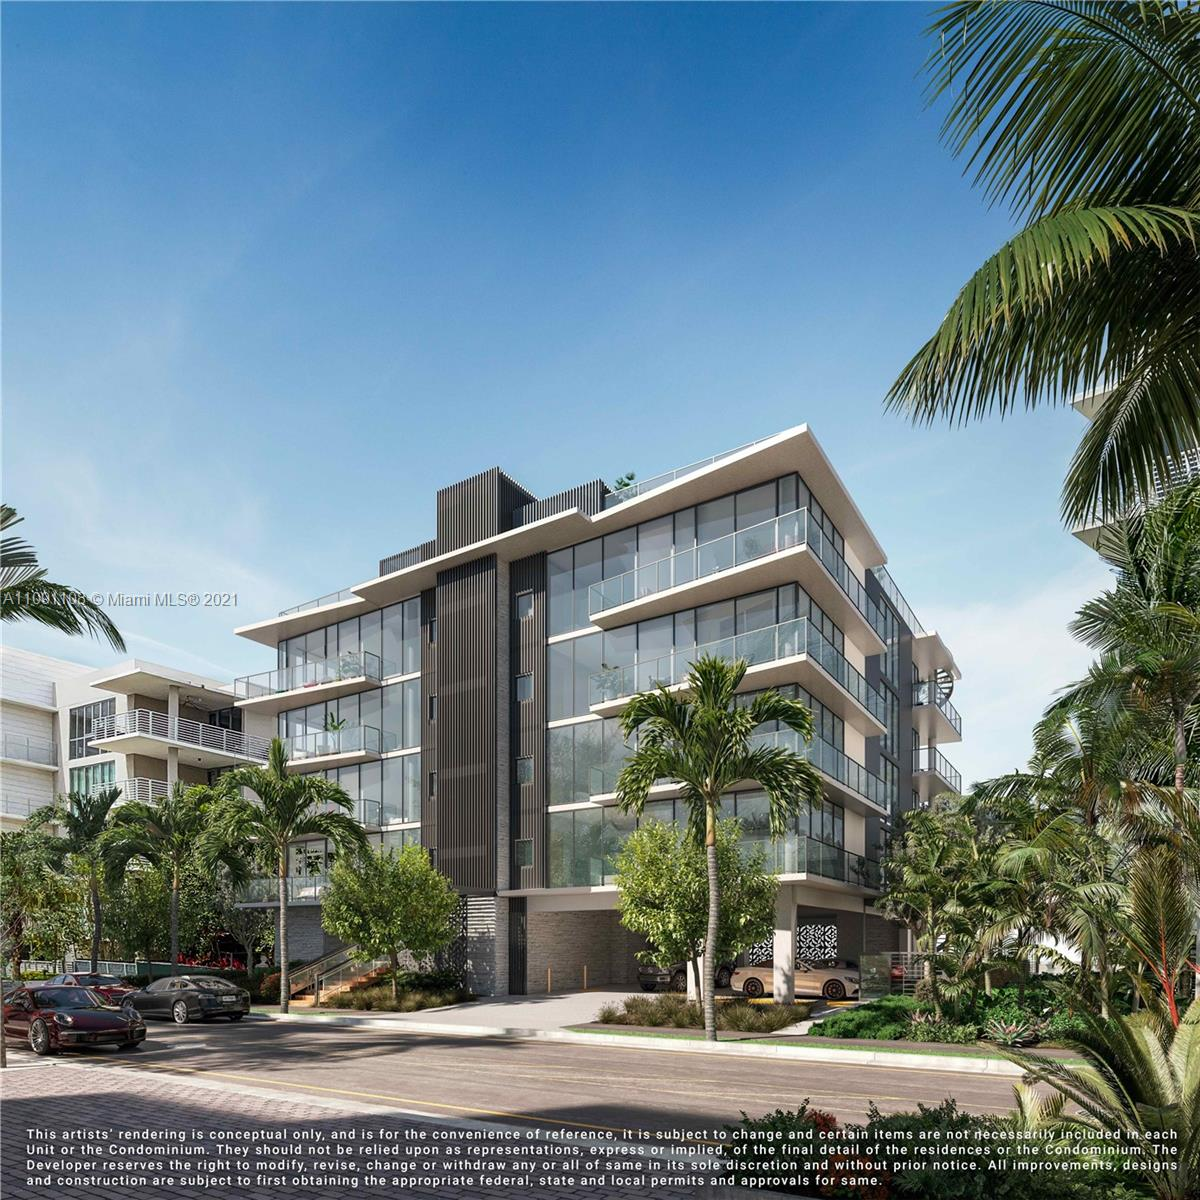 """Casa Murano Las Olas will rise 5 stories on beautiful Rio Grande Canal. Only 8 residences approx. 3,100 ft.², massive terraces w/gorgeous sunrise & sunset views. All custom designed floating homes are 3 bedrooms +den & 4.5 baths; 10' ceilings, private elevator, coffered ceilings and elegant lighting. Exquisite finishes designed by IDC Interiors offering customizable Wolf/Subzero chef curated kitchen & bathrooms by renowned Mia Cucina. Boat slips & playful rooftop terraces w/hot tub & summer kitchen are included! Located in the heart of the yachting capital of the world; Fort Lauderdale. Steps away from Las Olas entertainment district, culinary cuisine & minutes to world famous Ft. Lauderdale Beach. """"Luxury waterfront living where no expense is overlooked"""" Completion date Q4-Winter 2022!"""